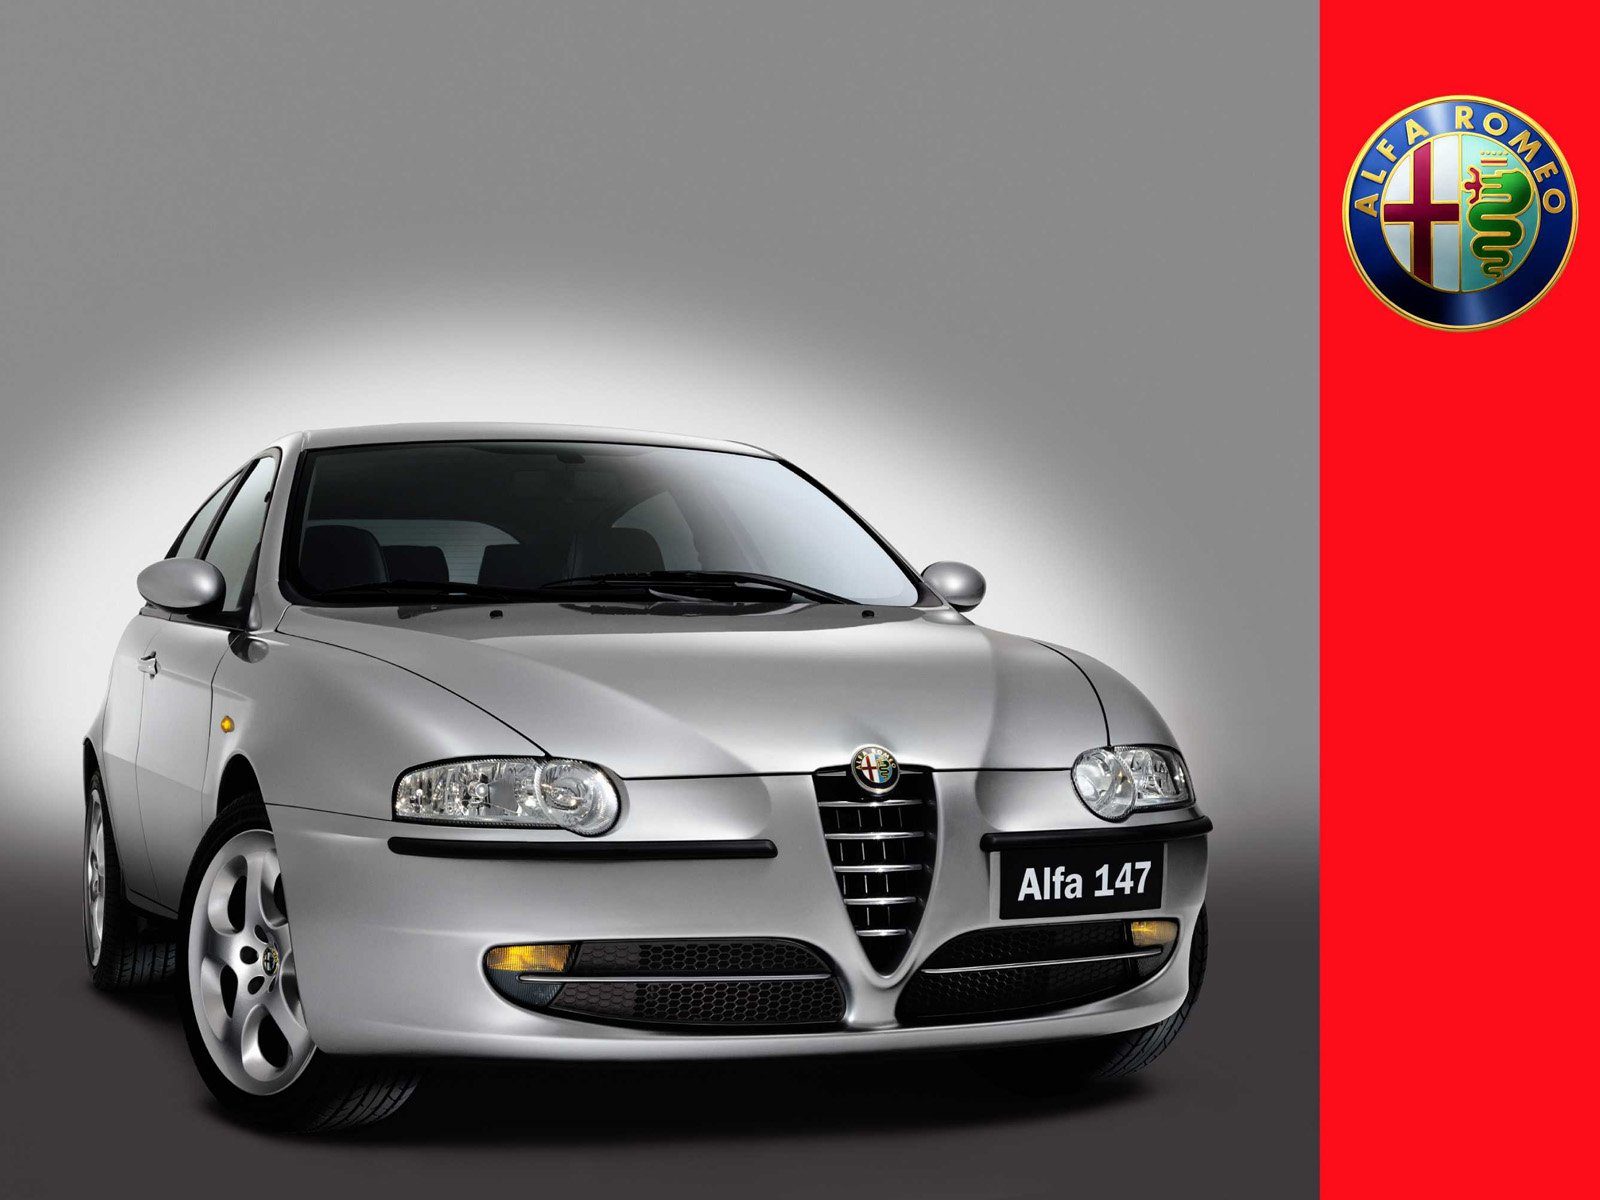 1600x1200 - Alfa Romeo 147 Wallpapers 20